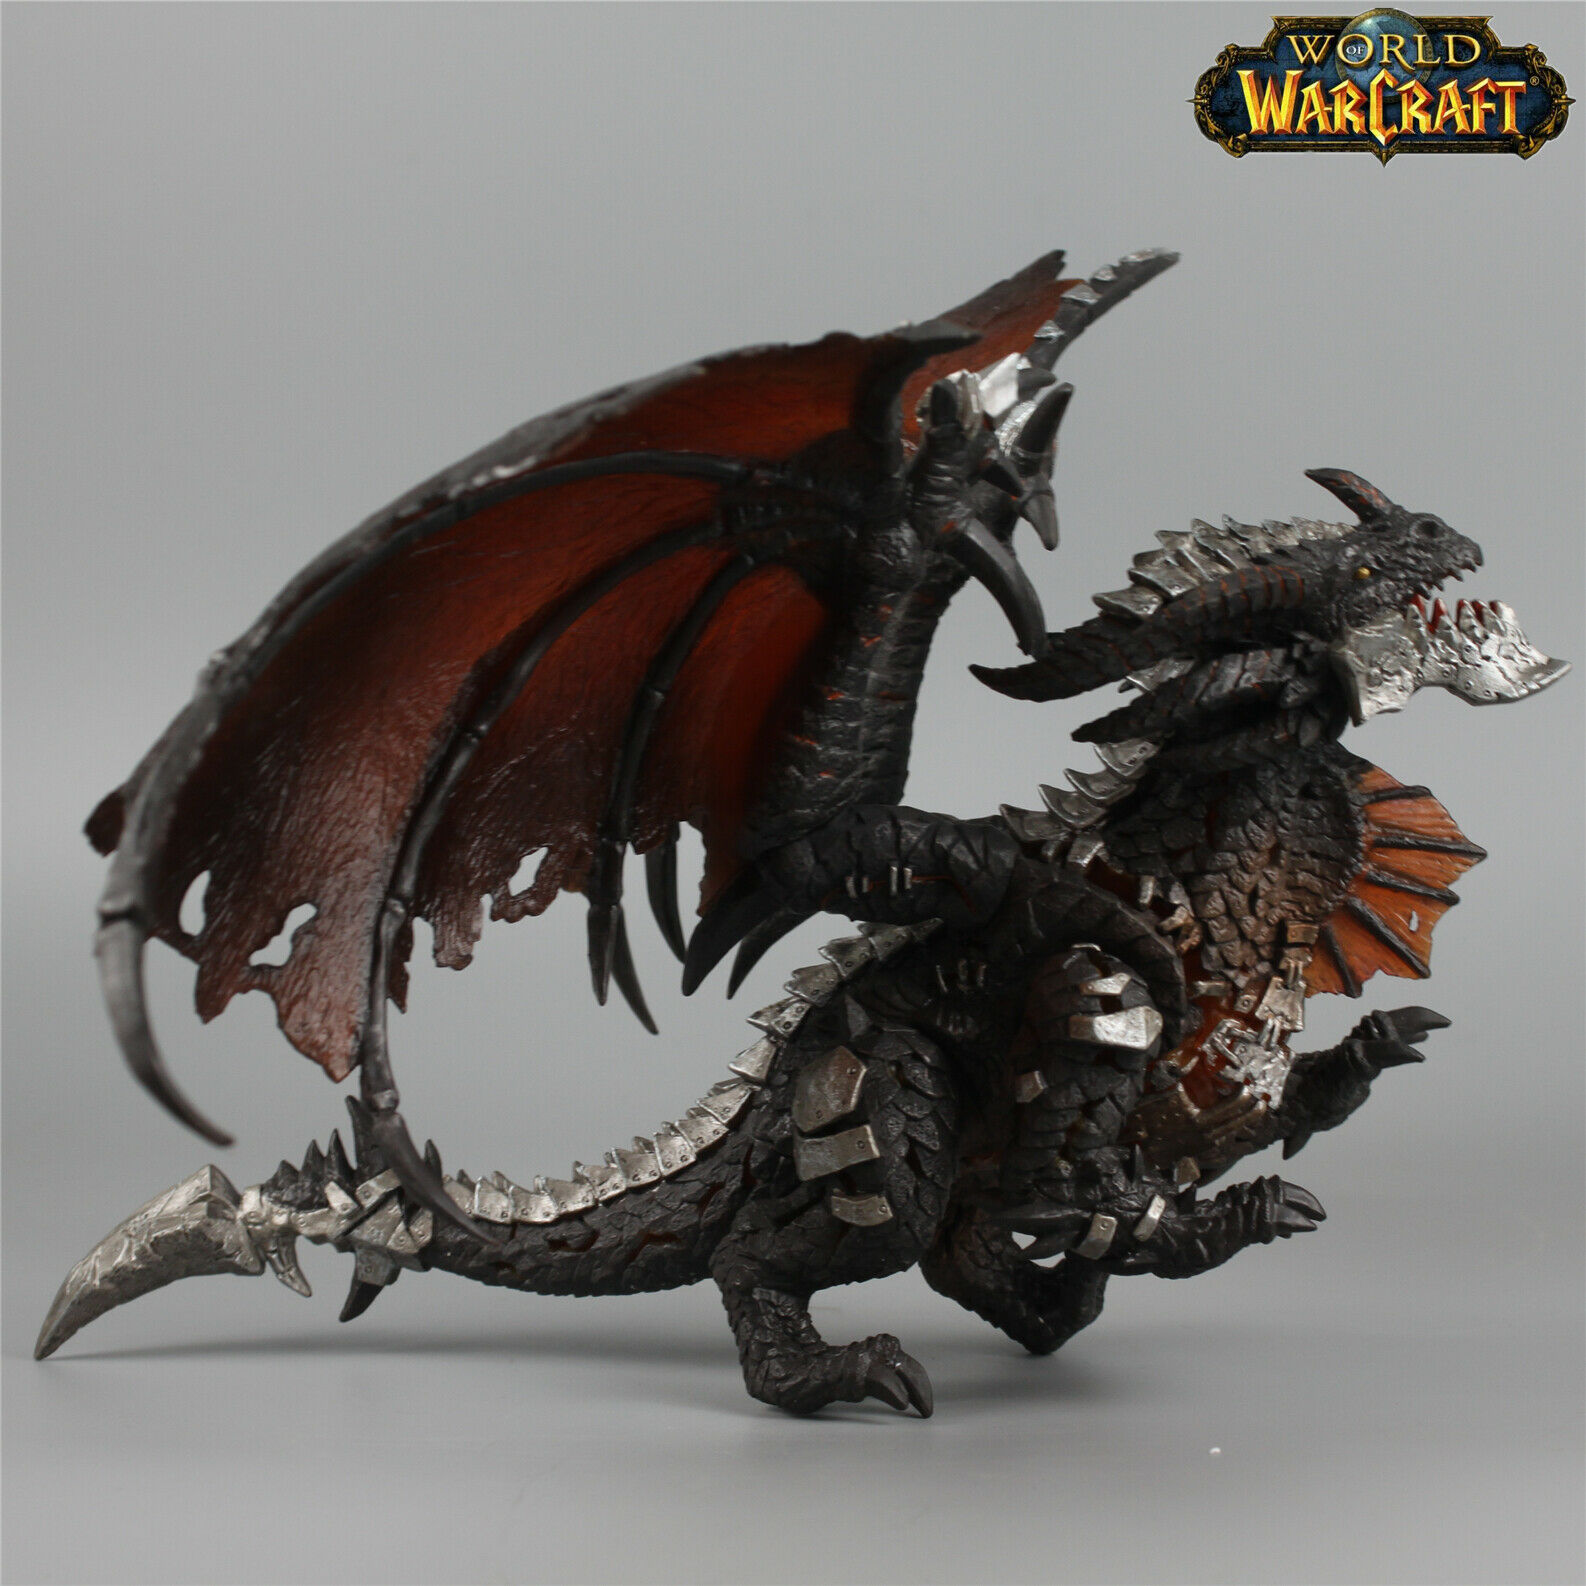 WoW Cataclysm World of Warcraft Neltharion Death Wing with Light Gradient Effect